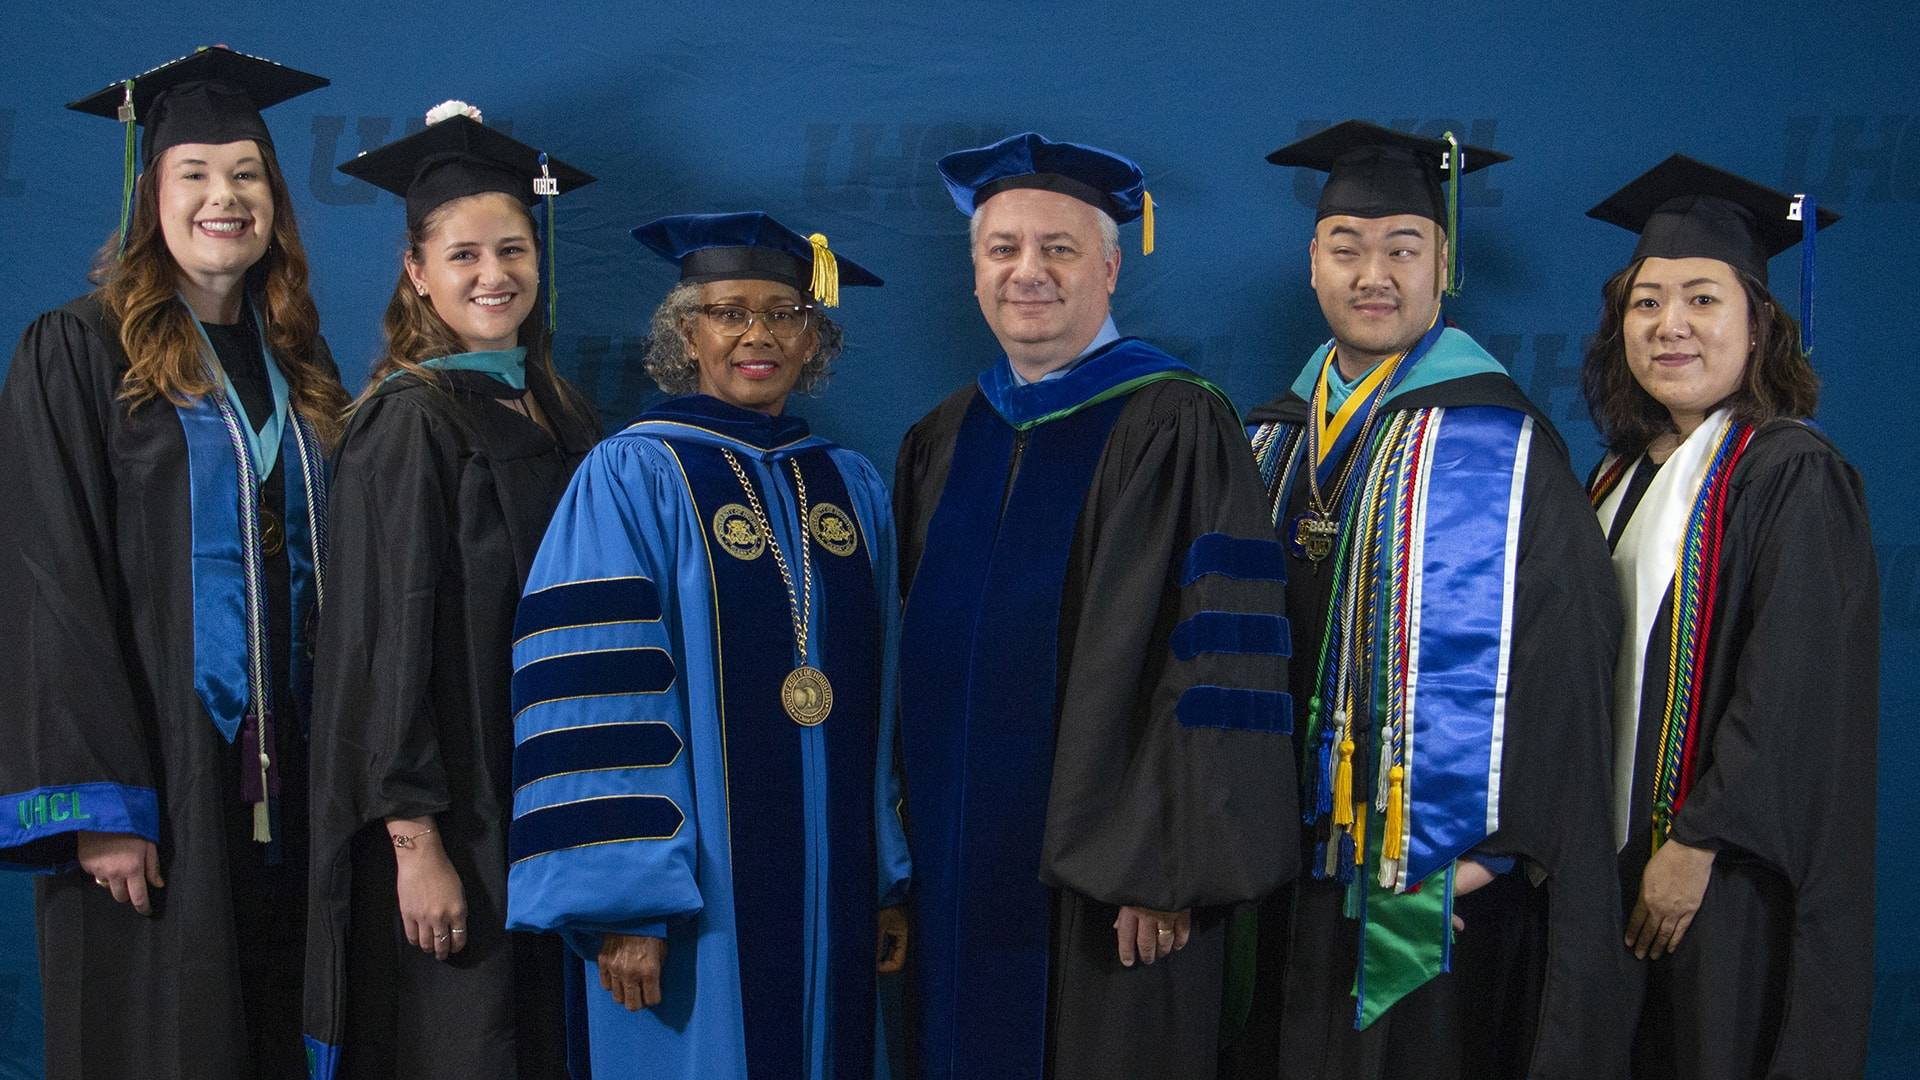 Students participate in UHCL fall 2019 commencement ceremony